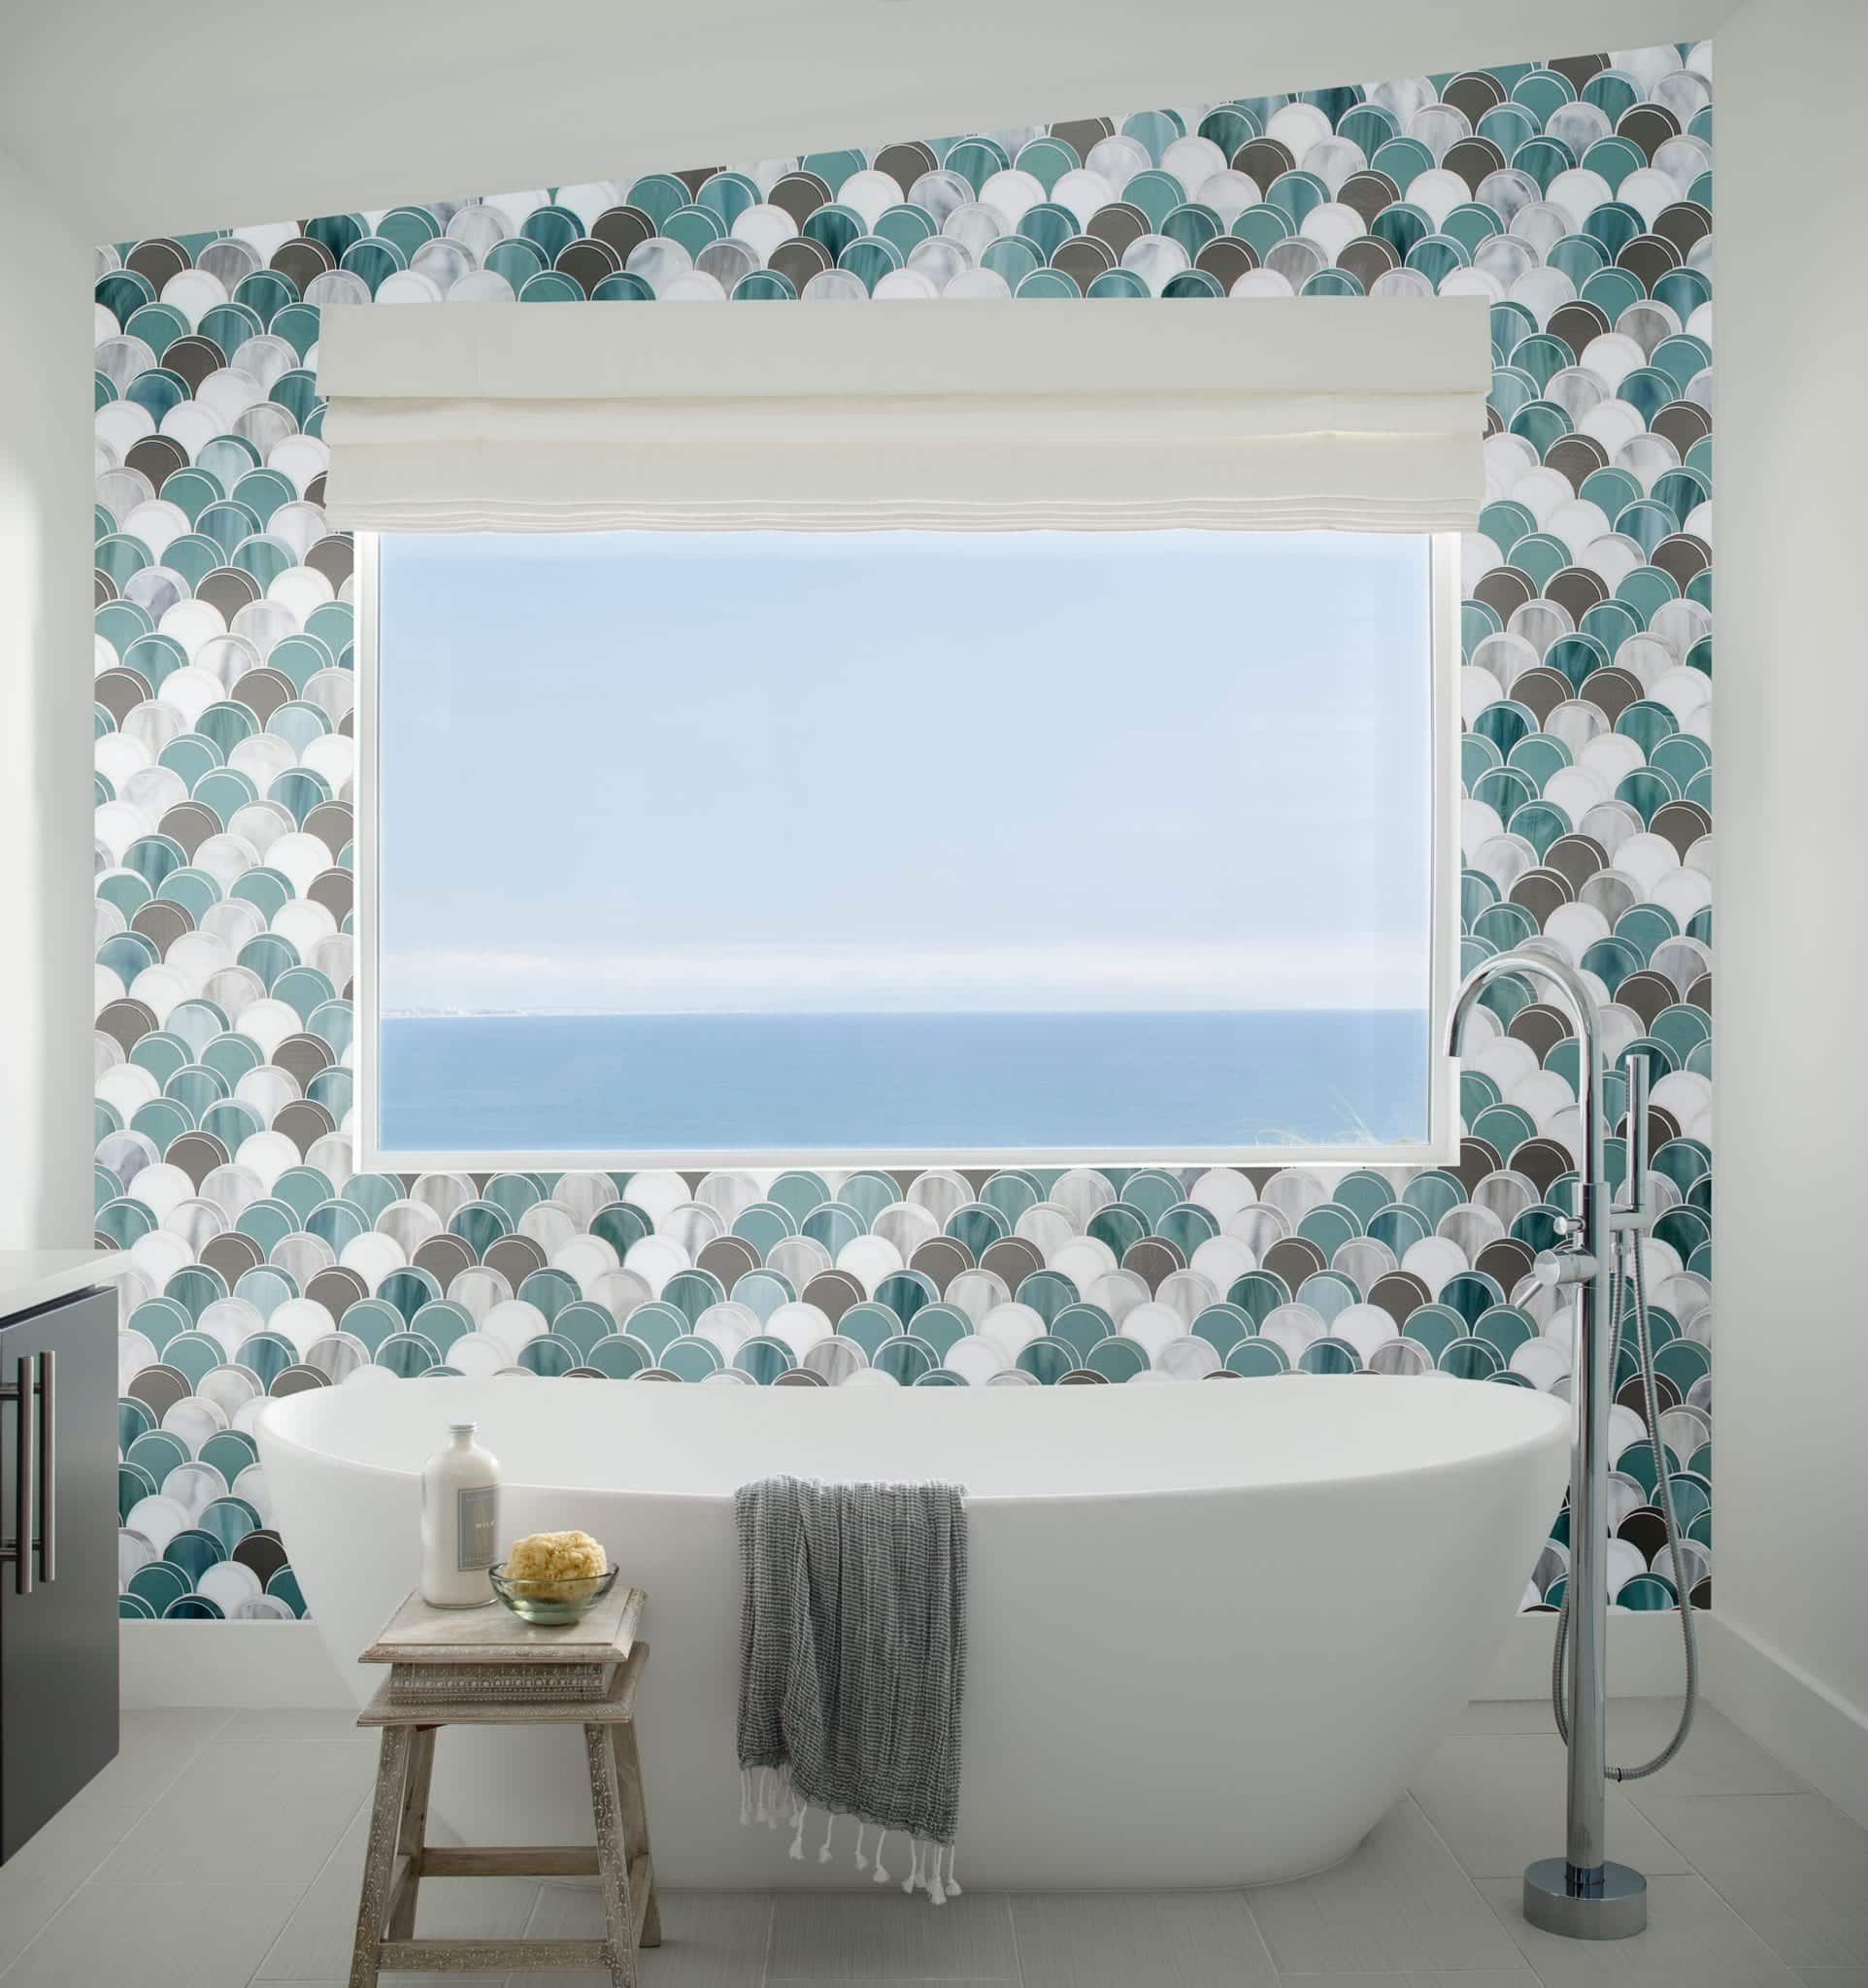 bathroom design ideas 2019, beach bathroom designs, tile designs for your beach house